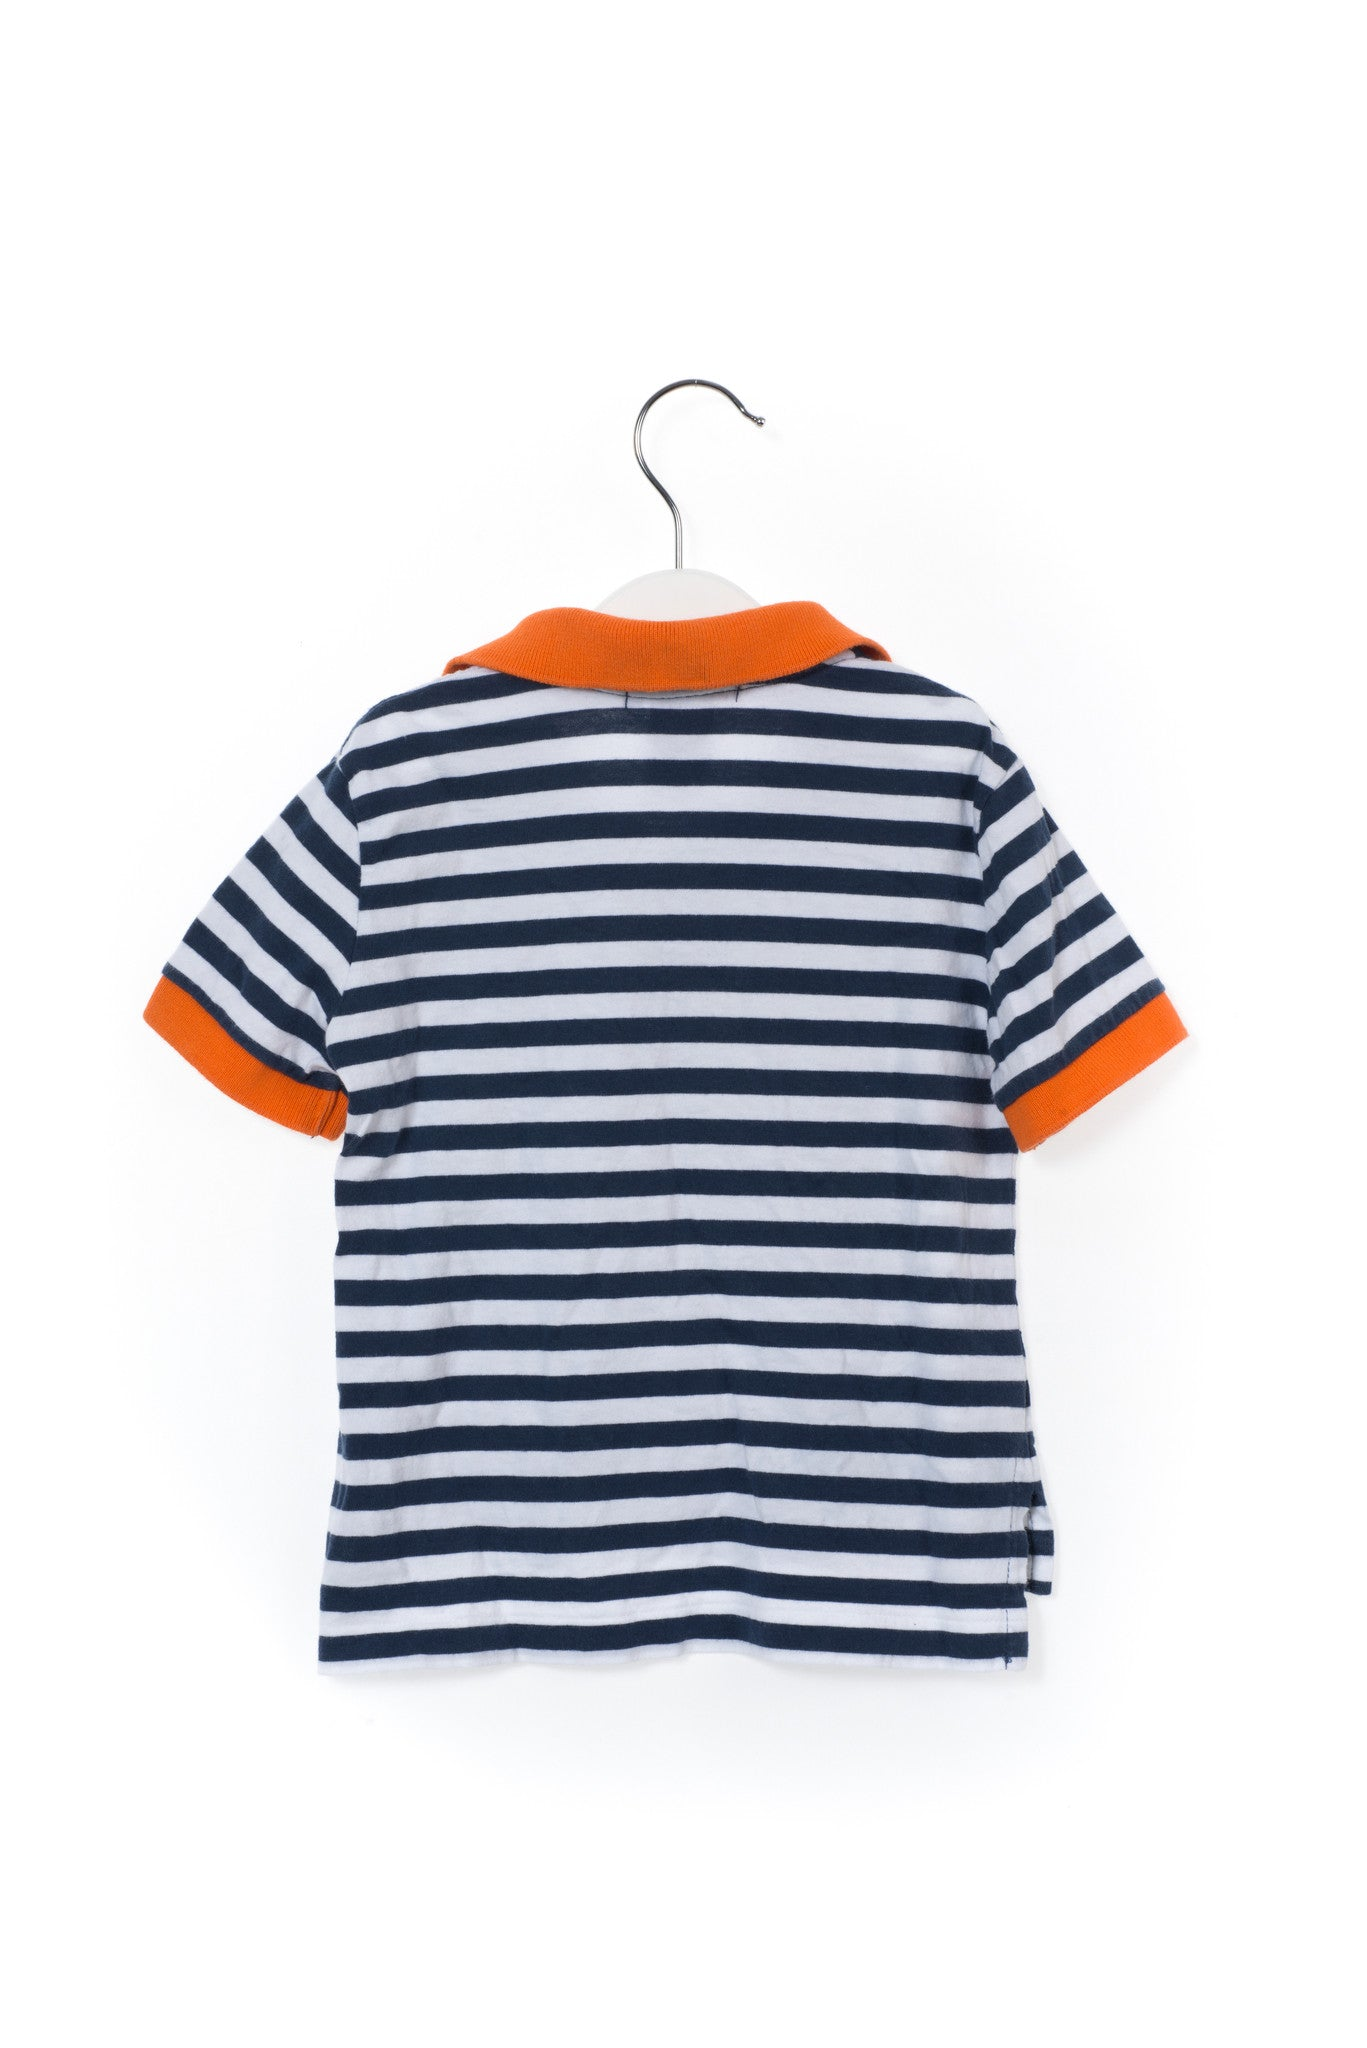 10001099 Polo Ralph Lauren Kids~Polo 2T at Retykle